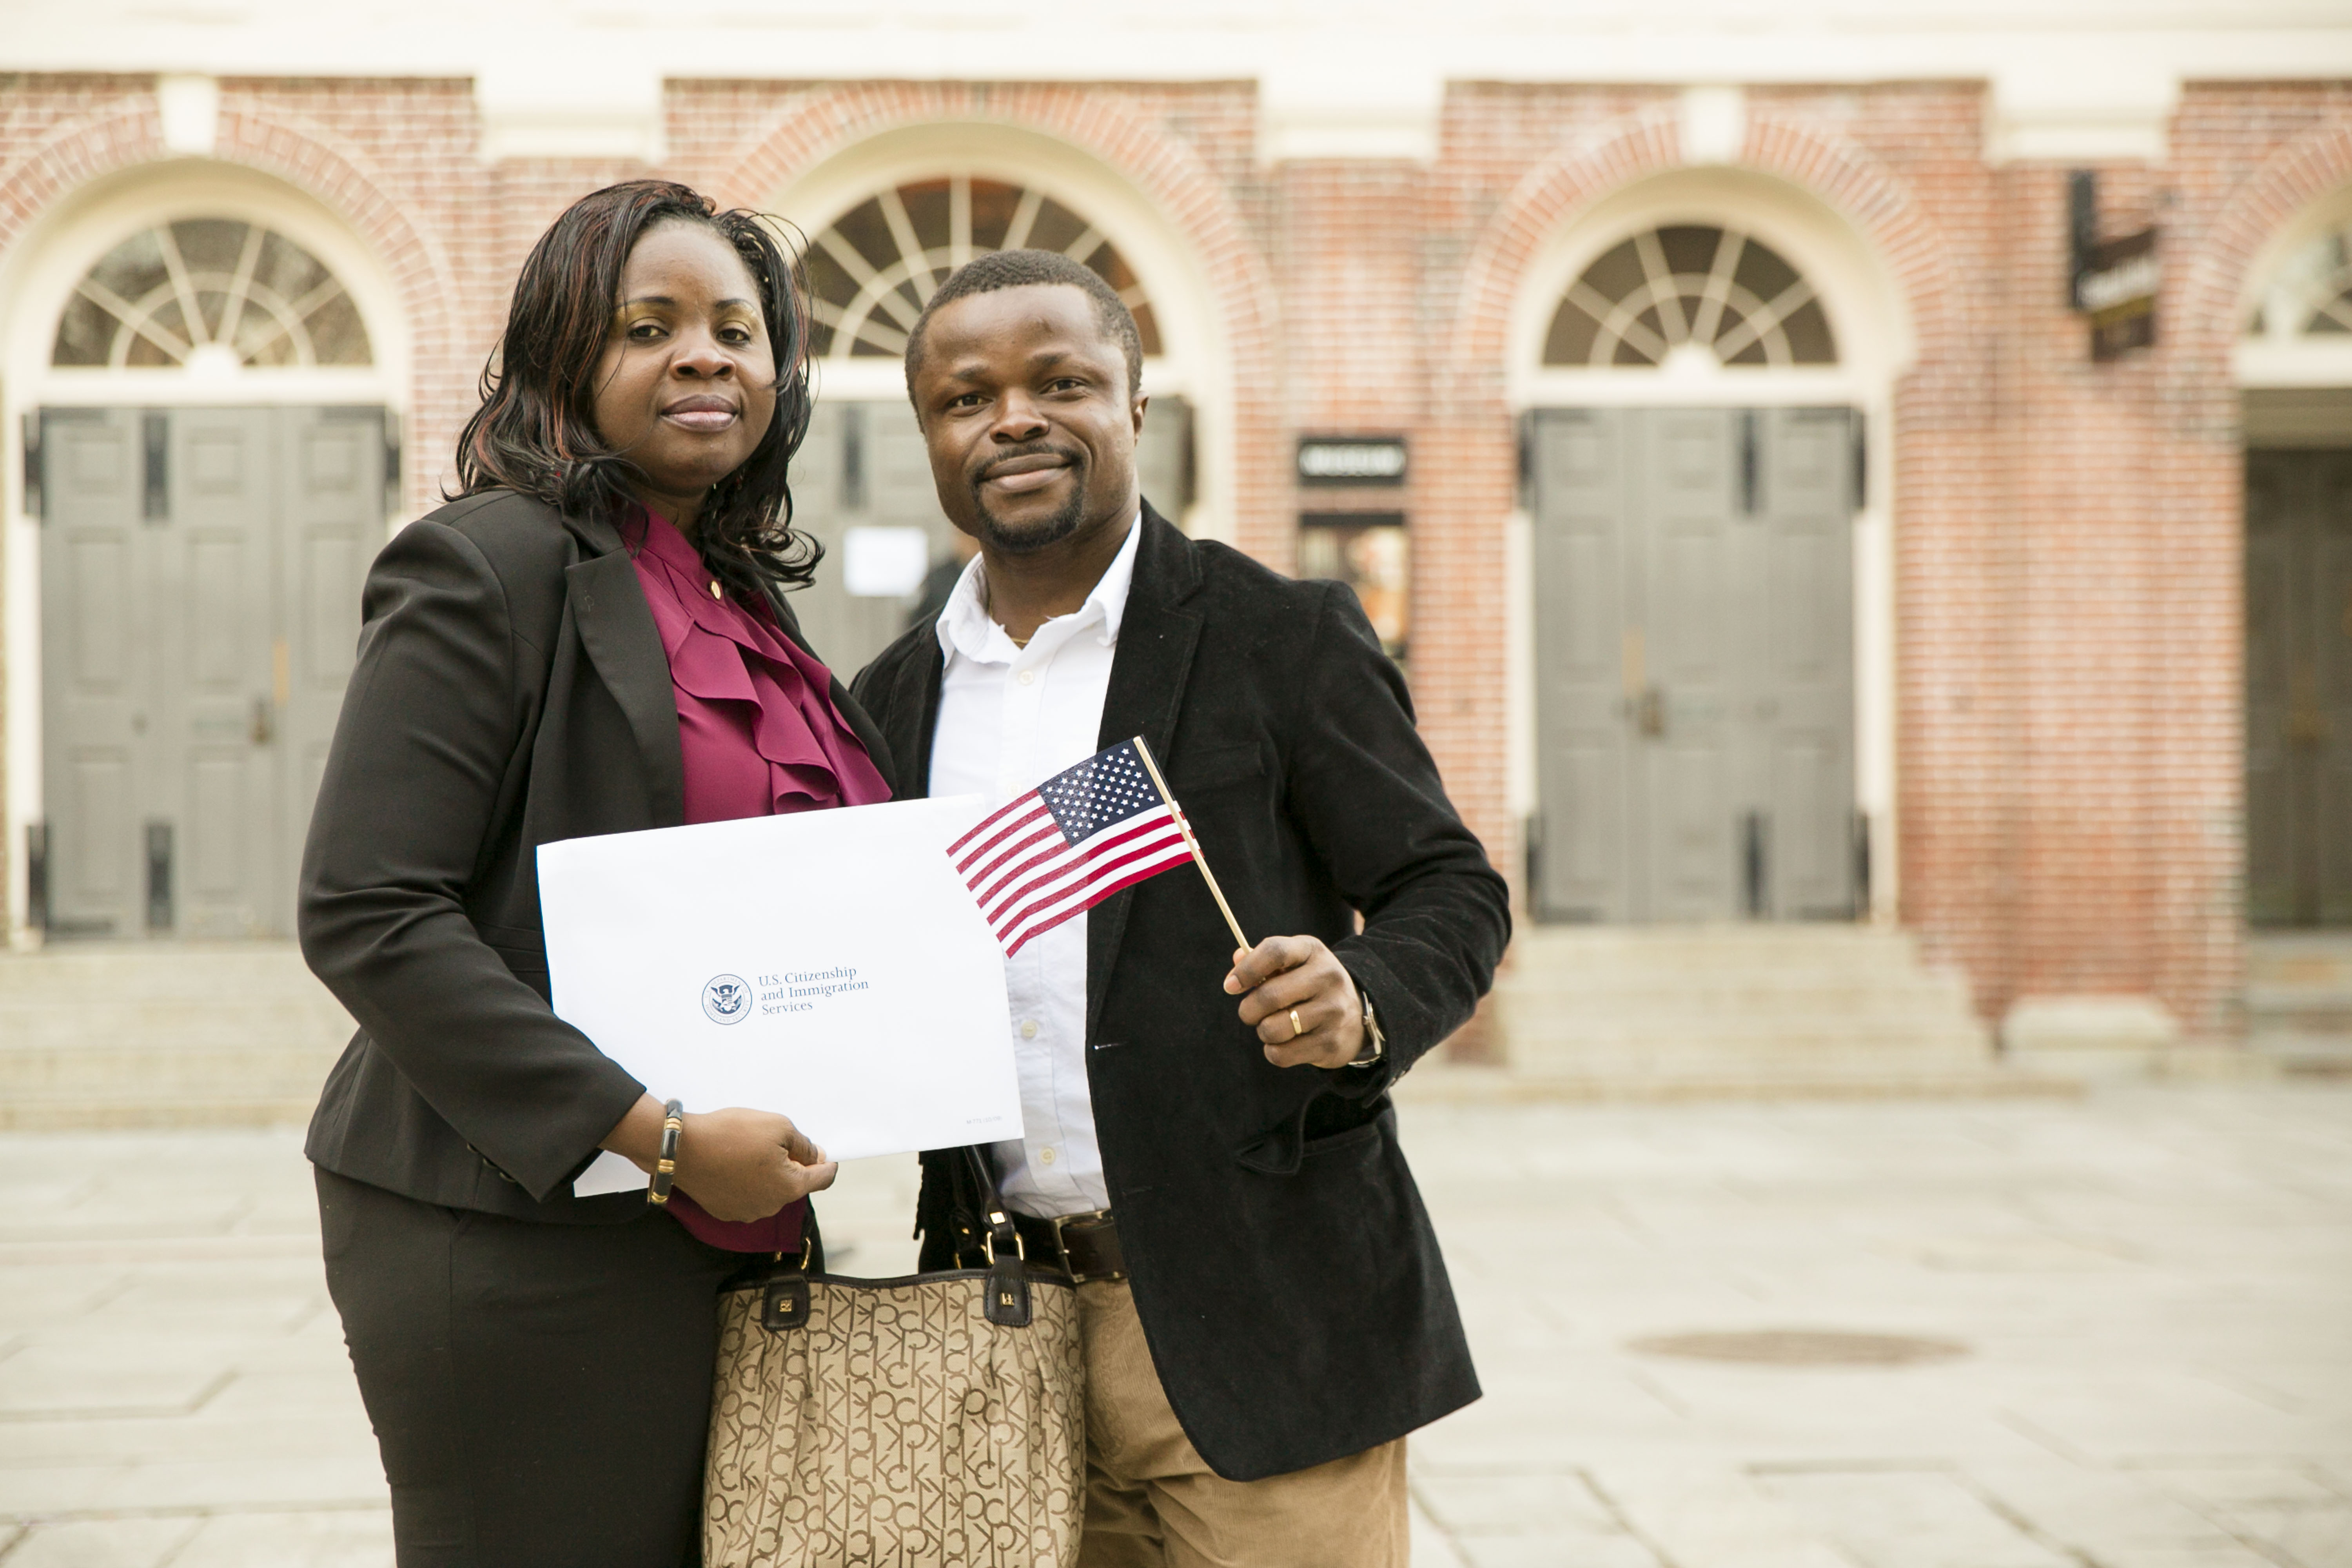 The changing face of citizenship - The Boston Globe